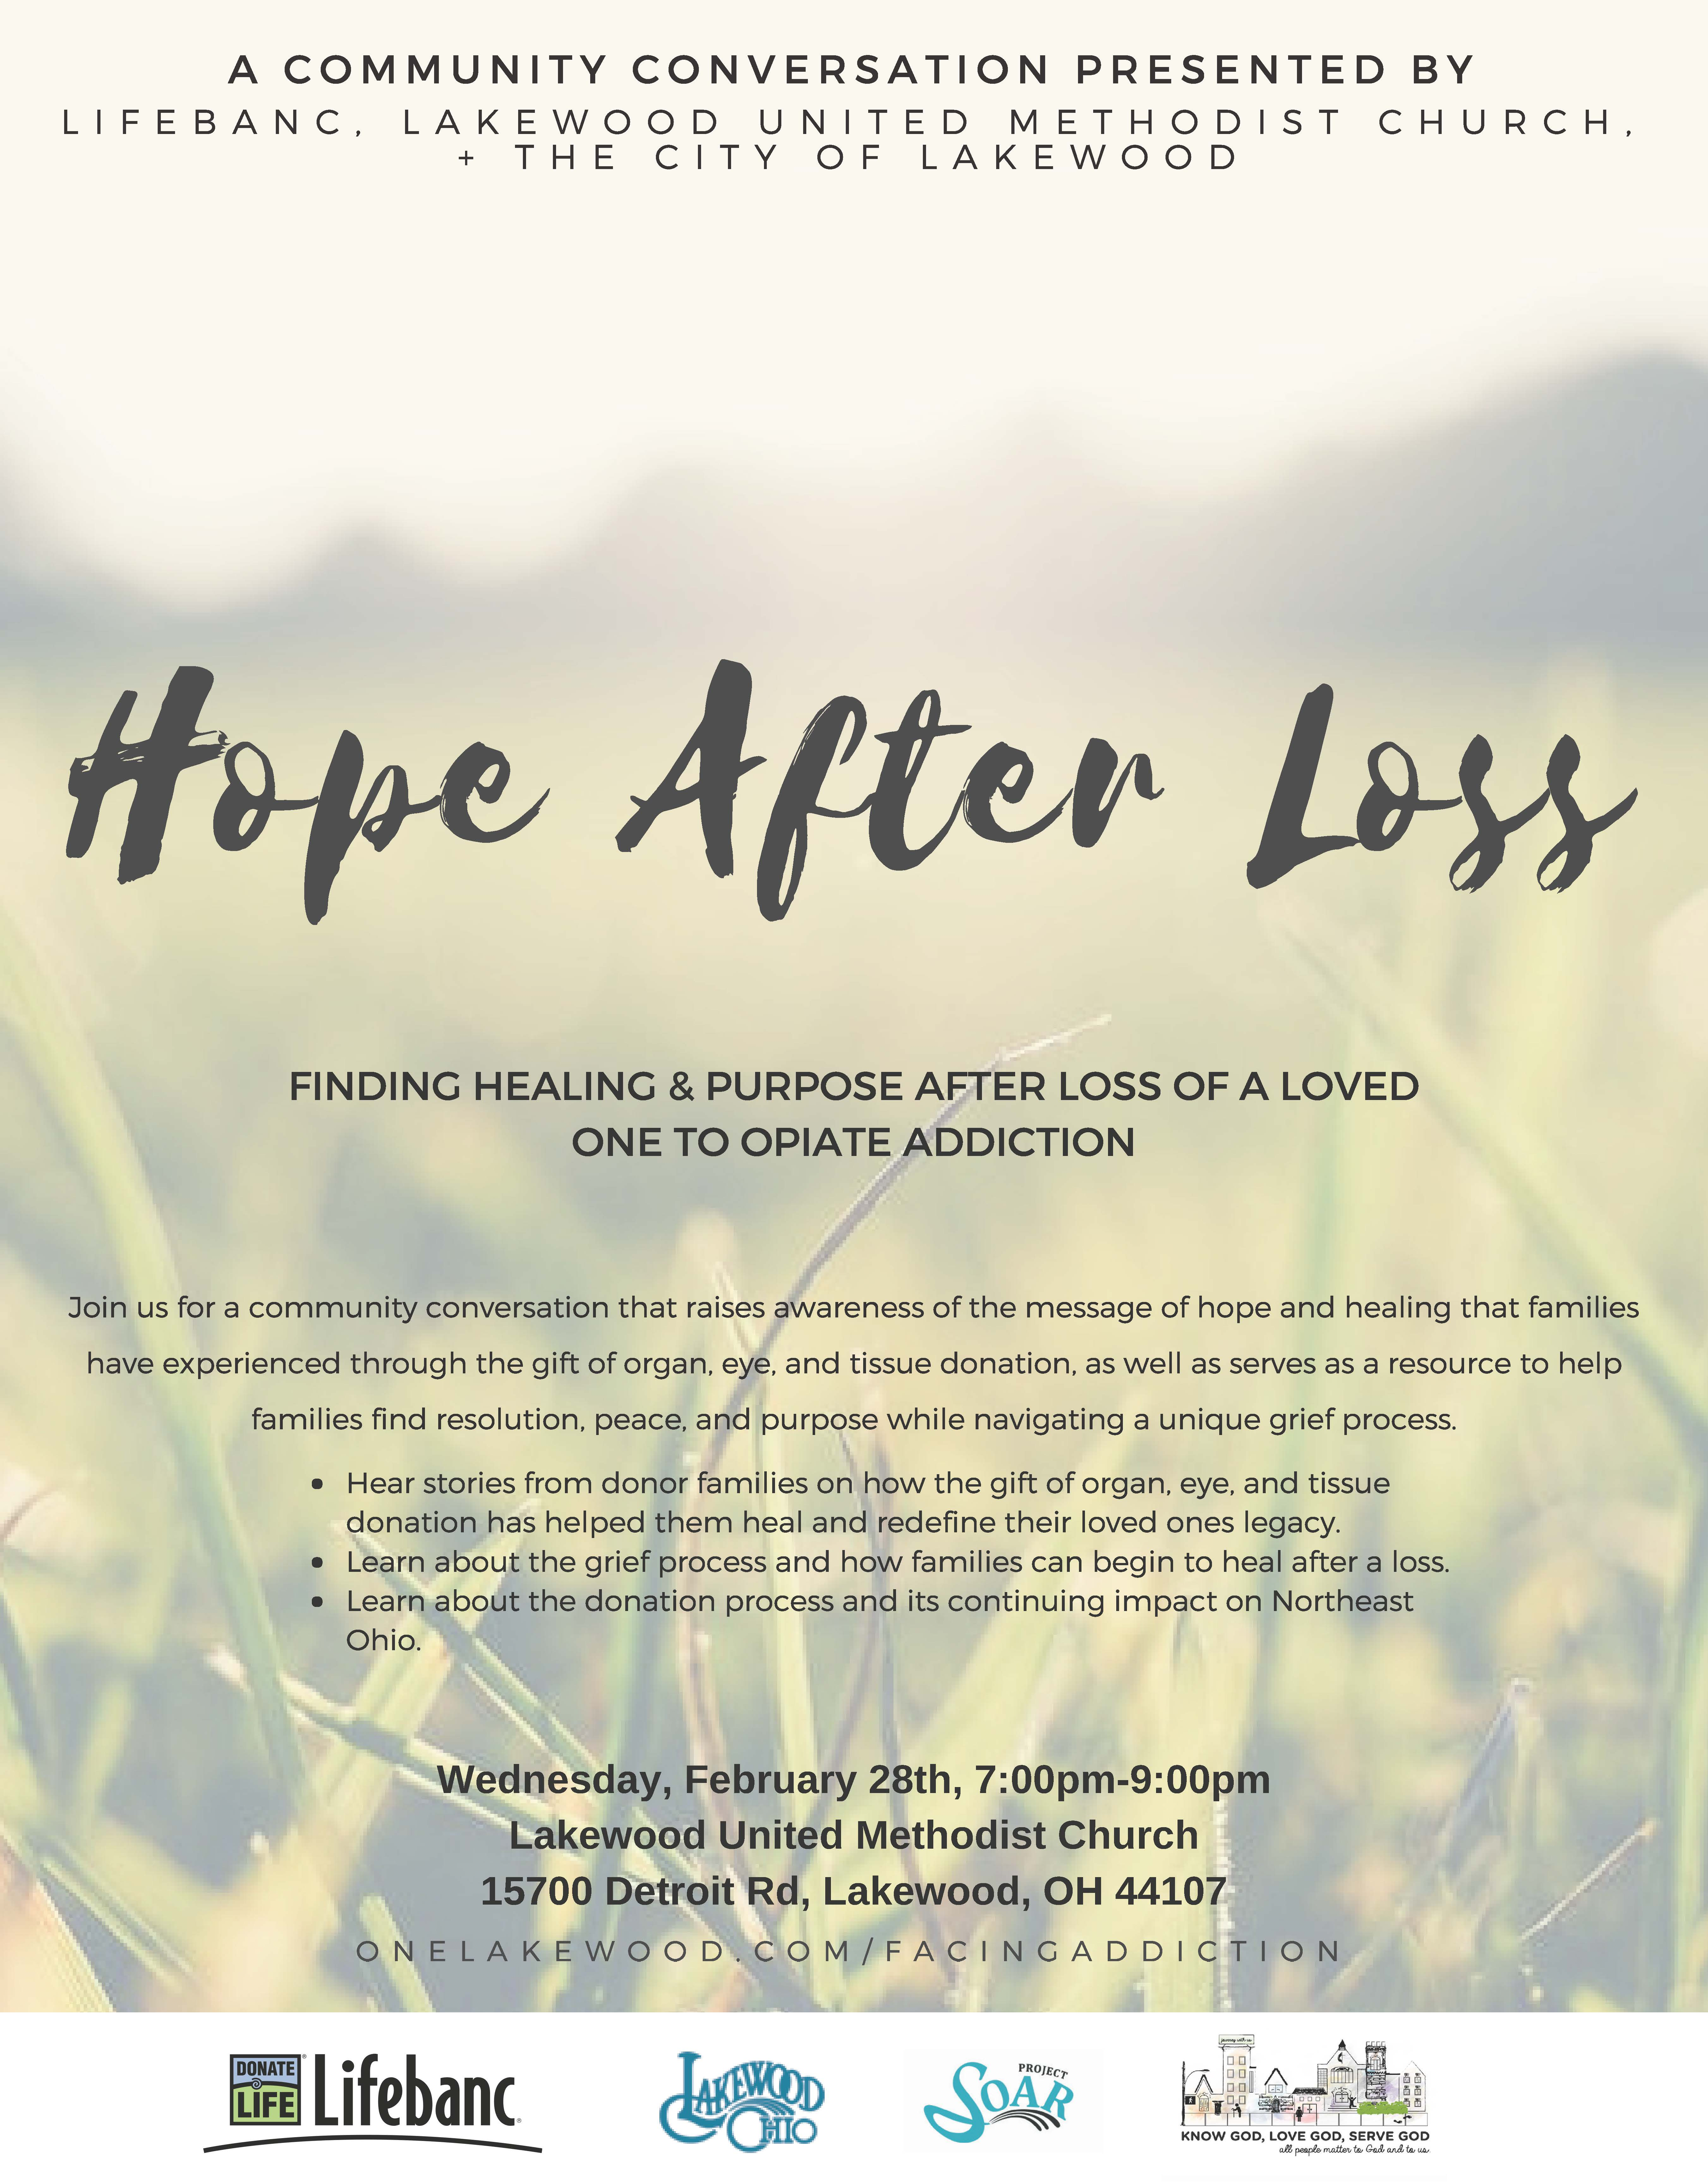 Hope After Loss Community Conversation The City of Lakewood